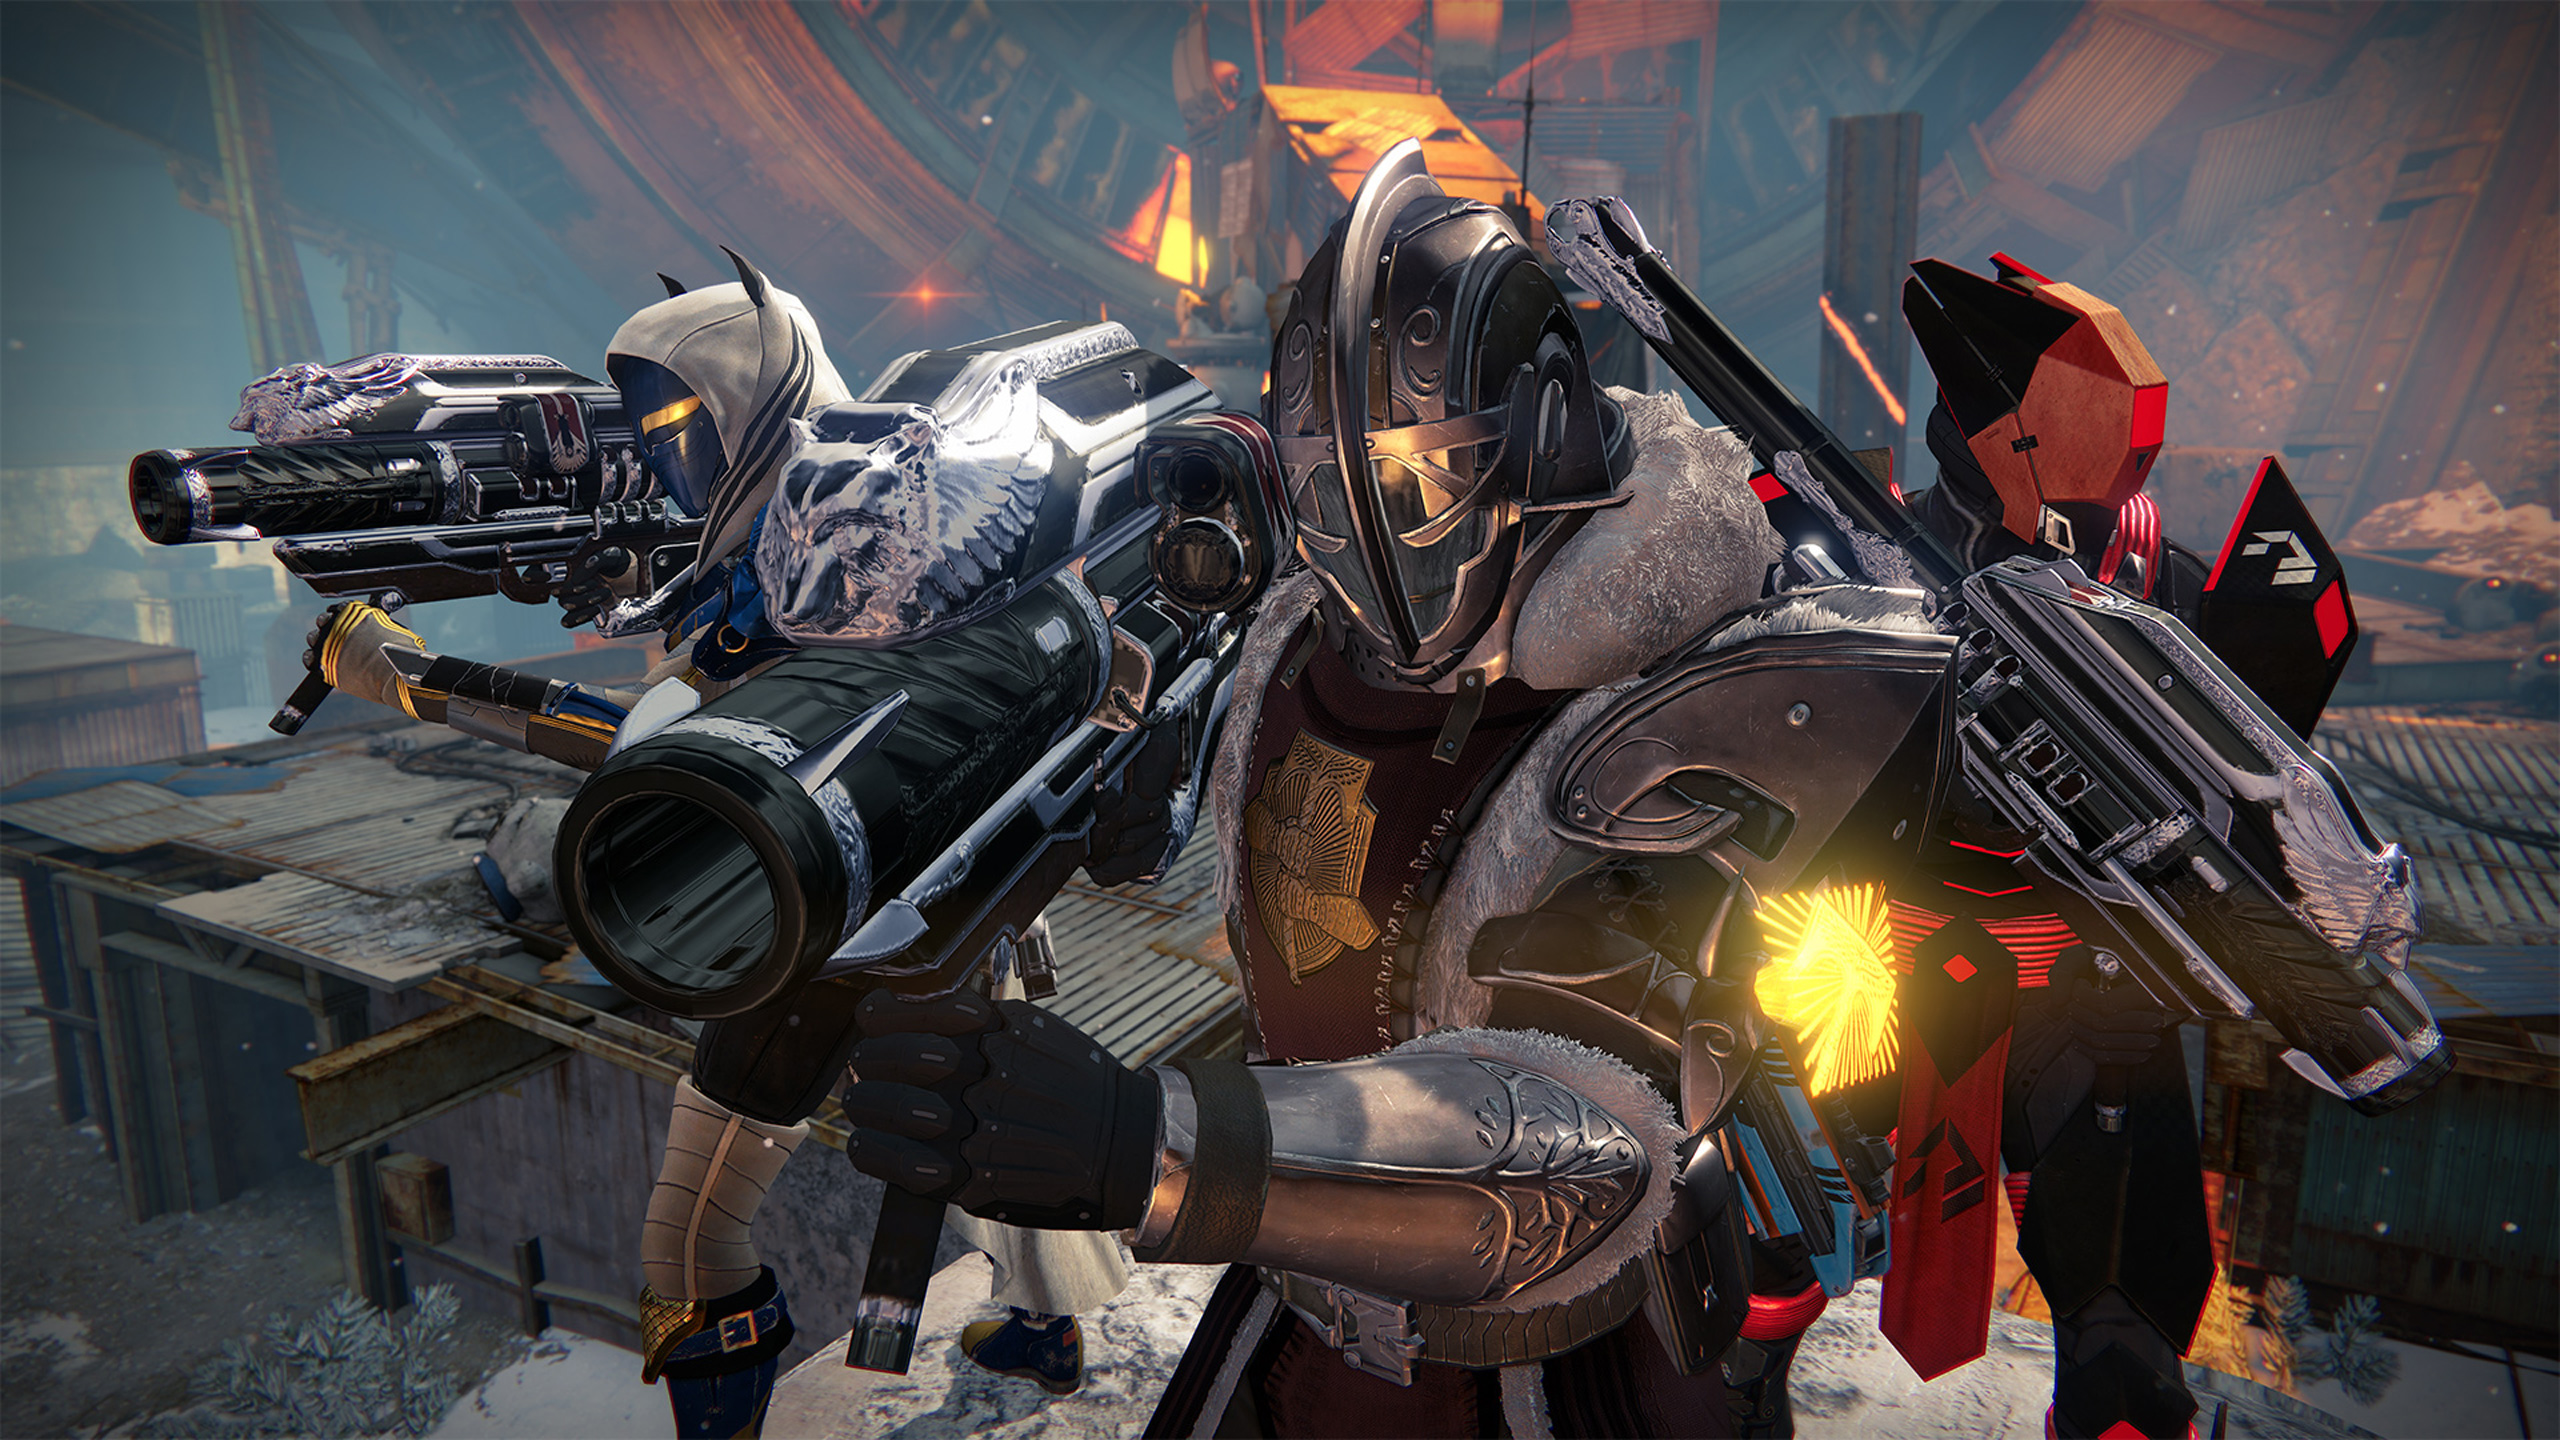 Destiny Rise Of Iron Wallpaper: Destiny Rise Of Iron HD, HD Games, 4k Wallpapers, Images